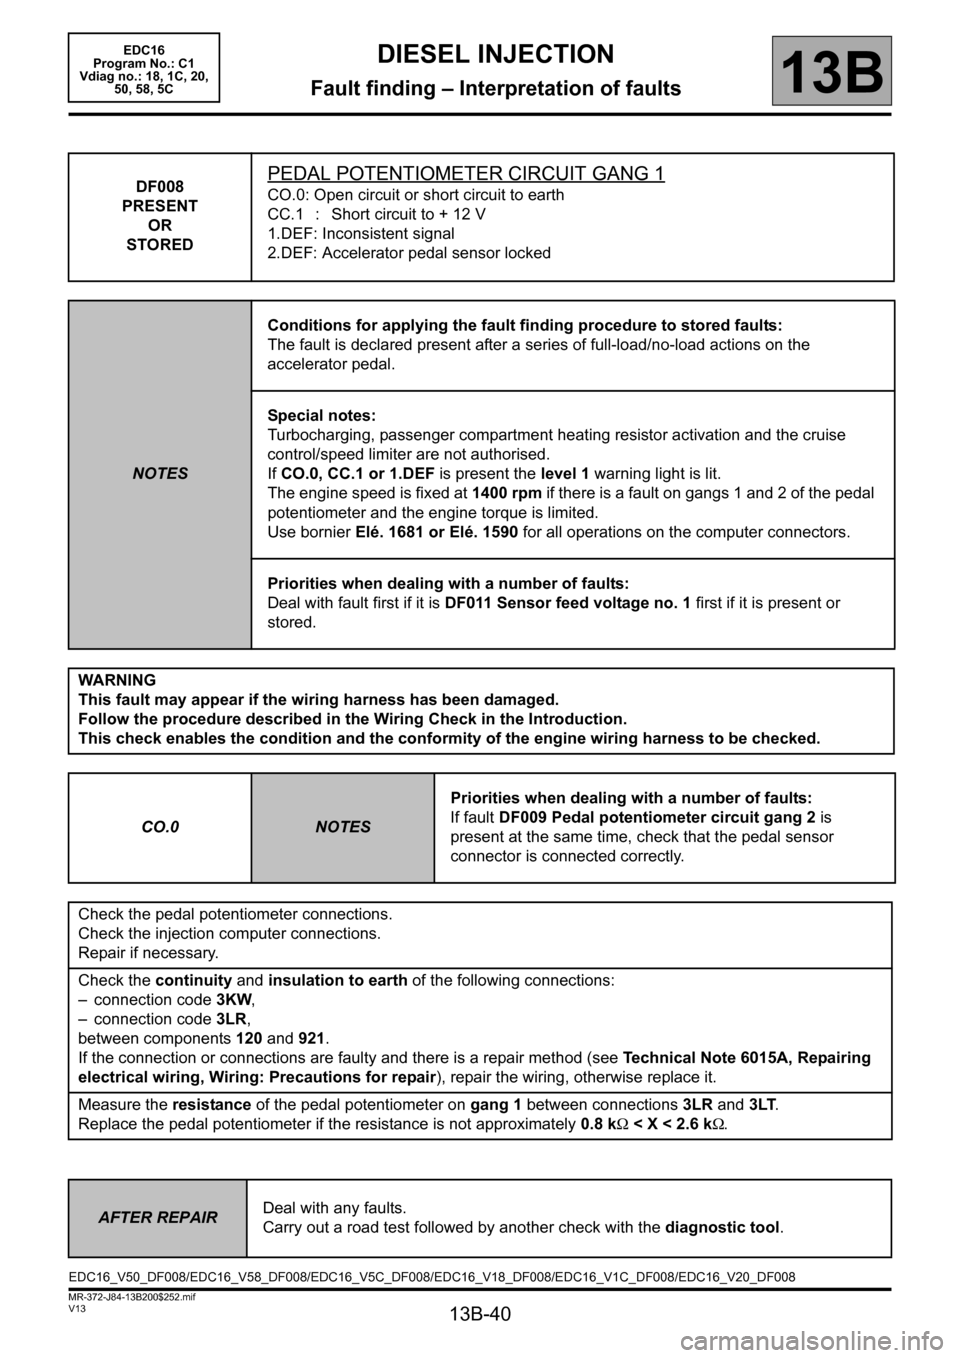 RENAULT SCENIC 2011 J95 / 3.G Engine And Peripherals EDC16 Workshop Manual, Page 40